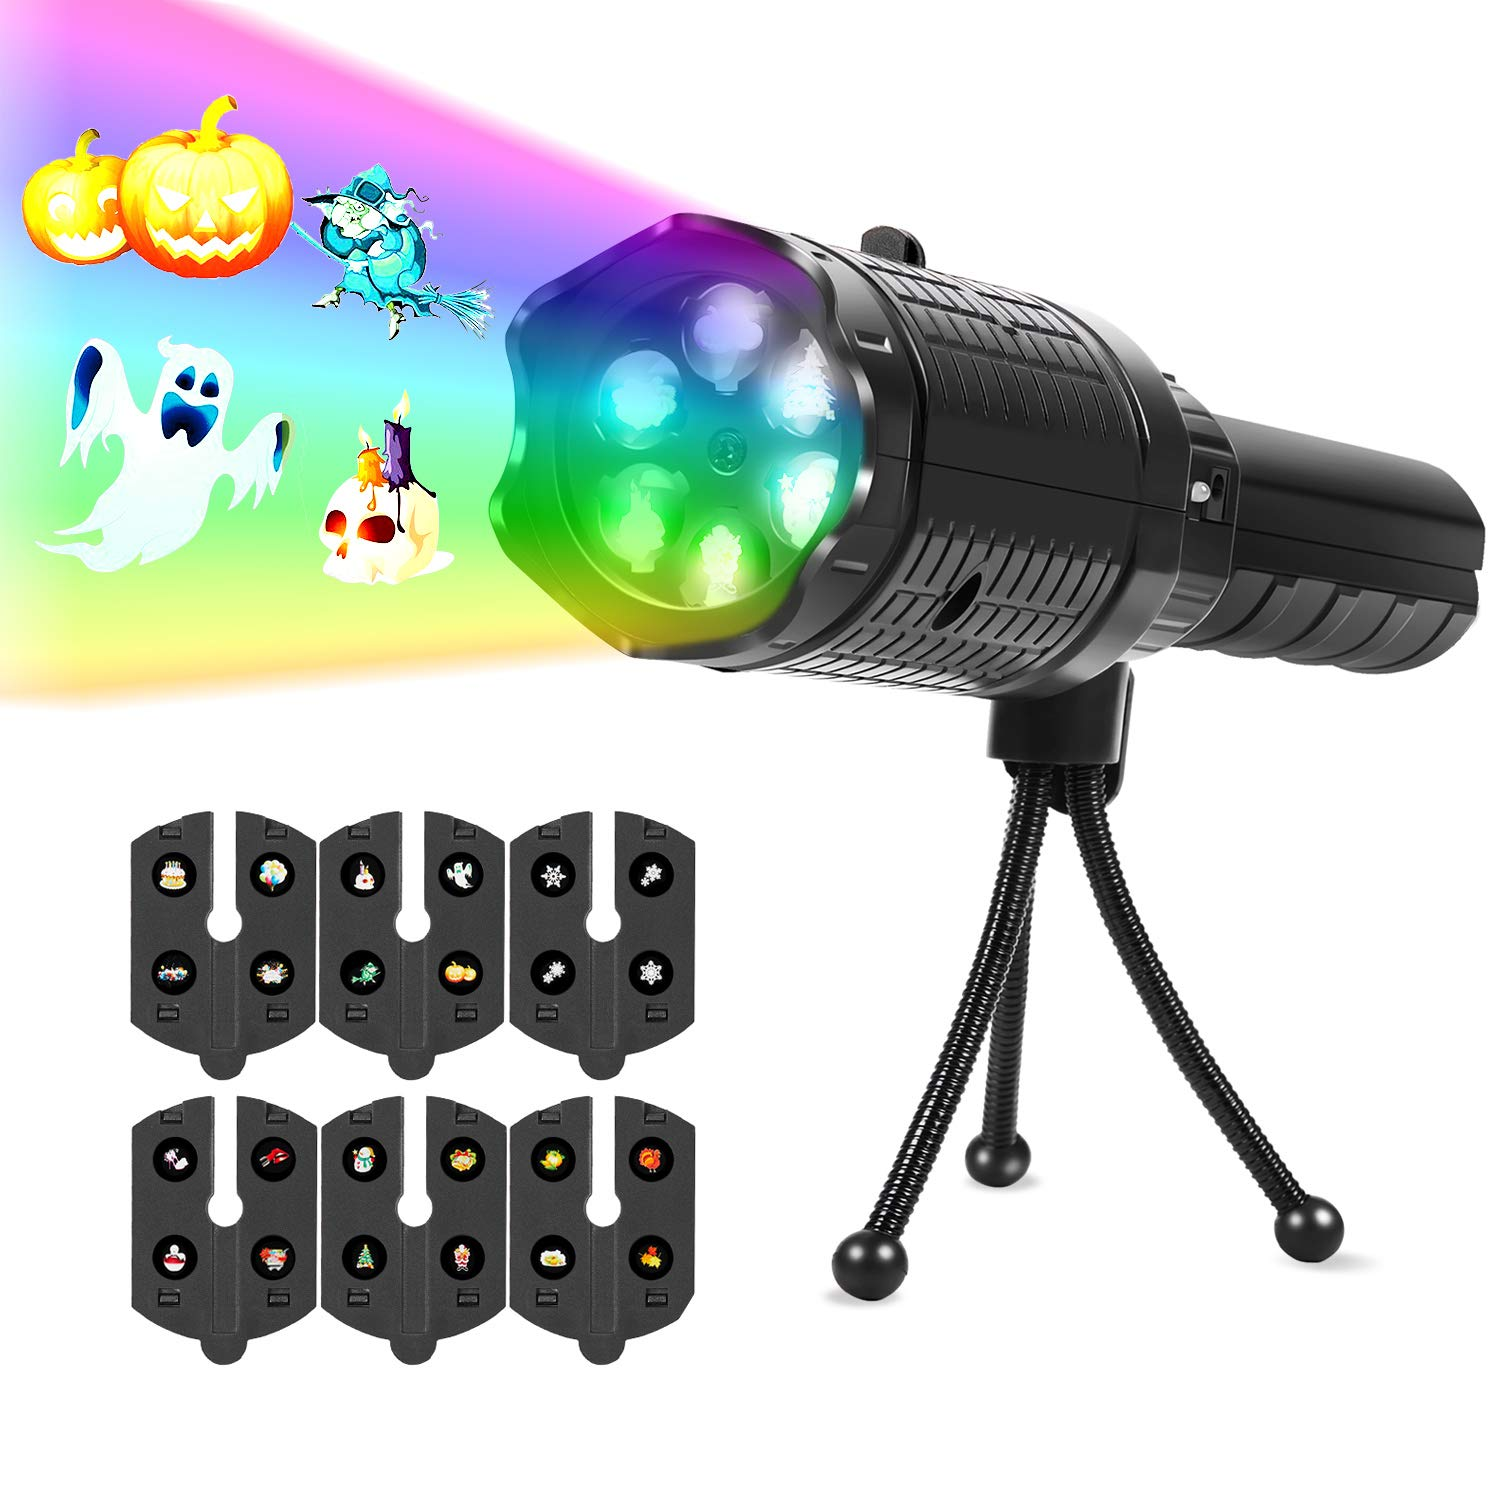 70% off  Toolmore Portable LED Projector Lights with Tripod